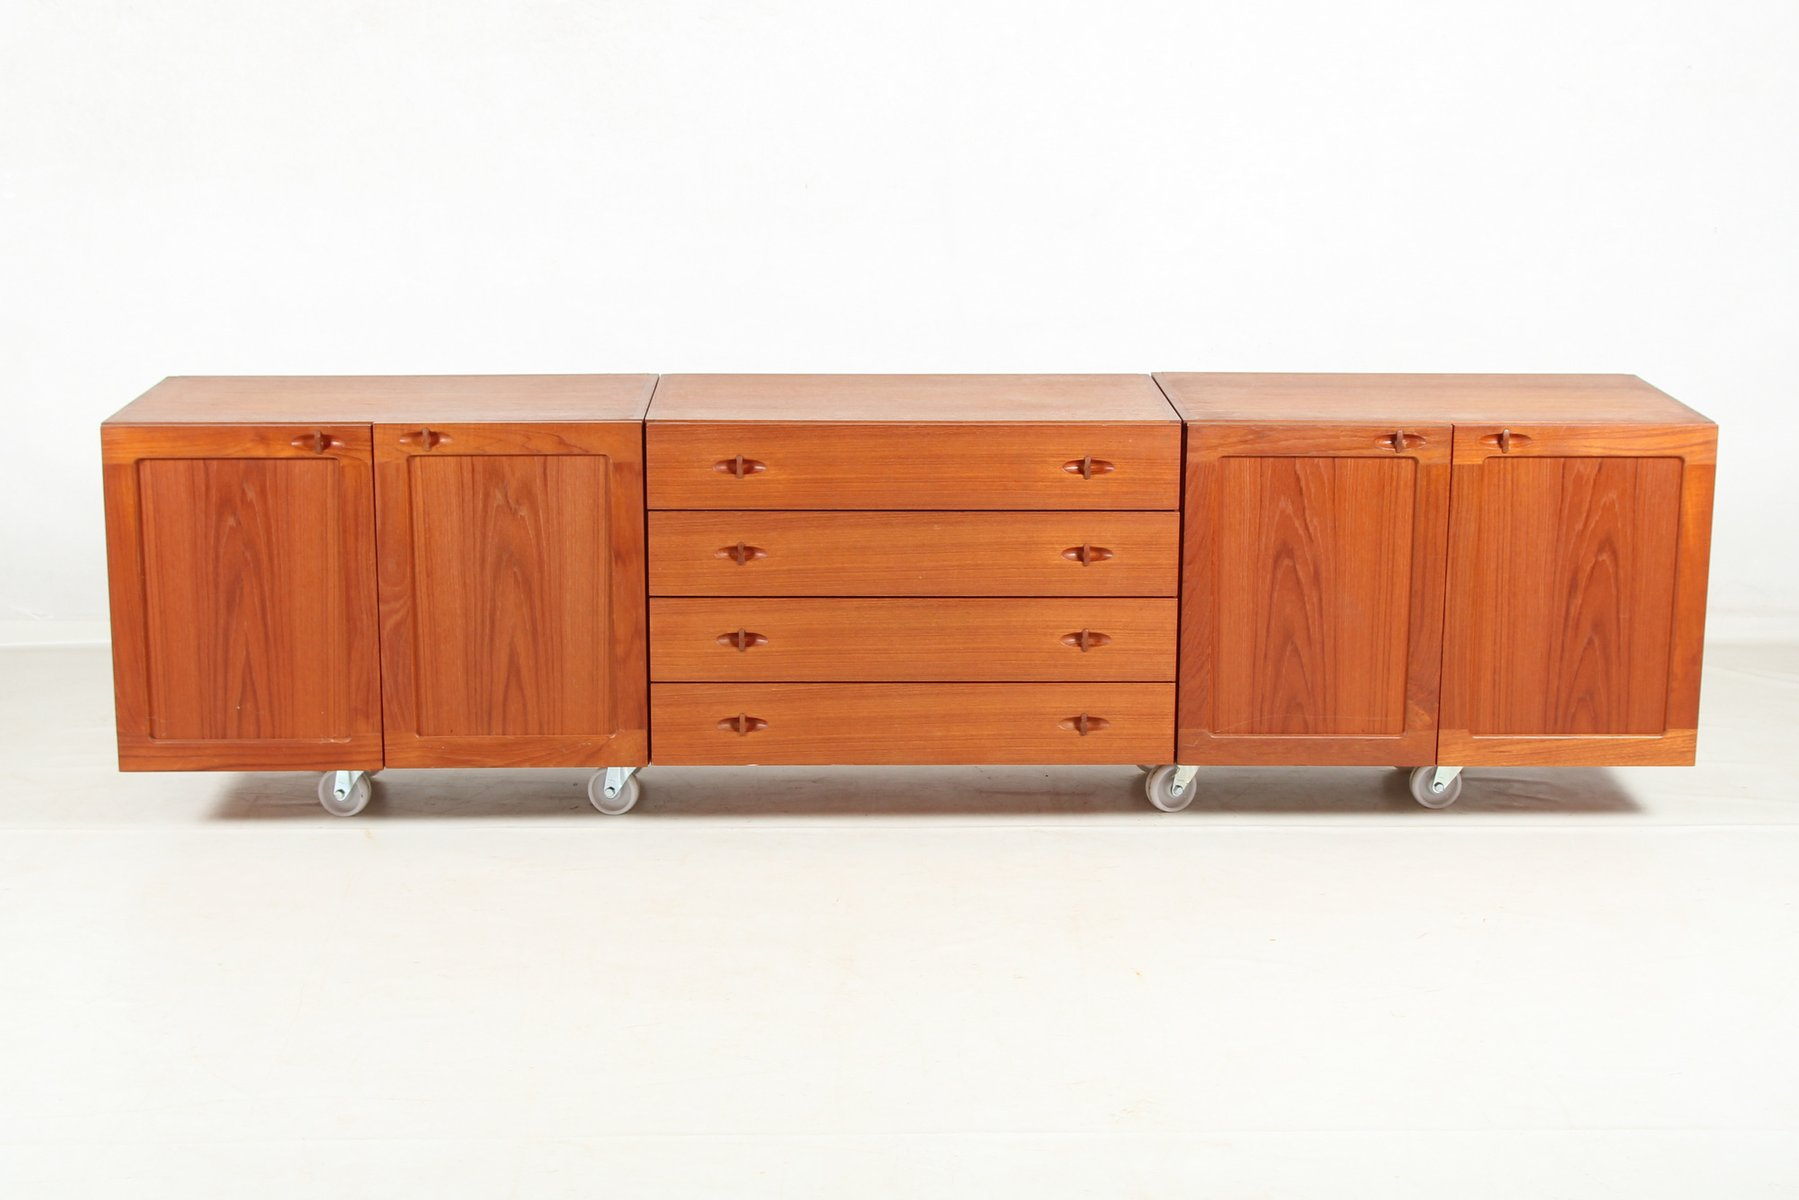 vintage danish modular sideboard in teak veneer for sale at pamono. Black Bedroom Furniture Sets. Home Design Ideas